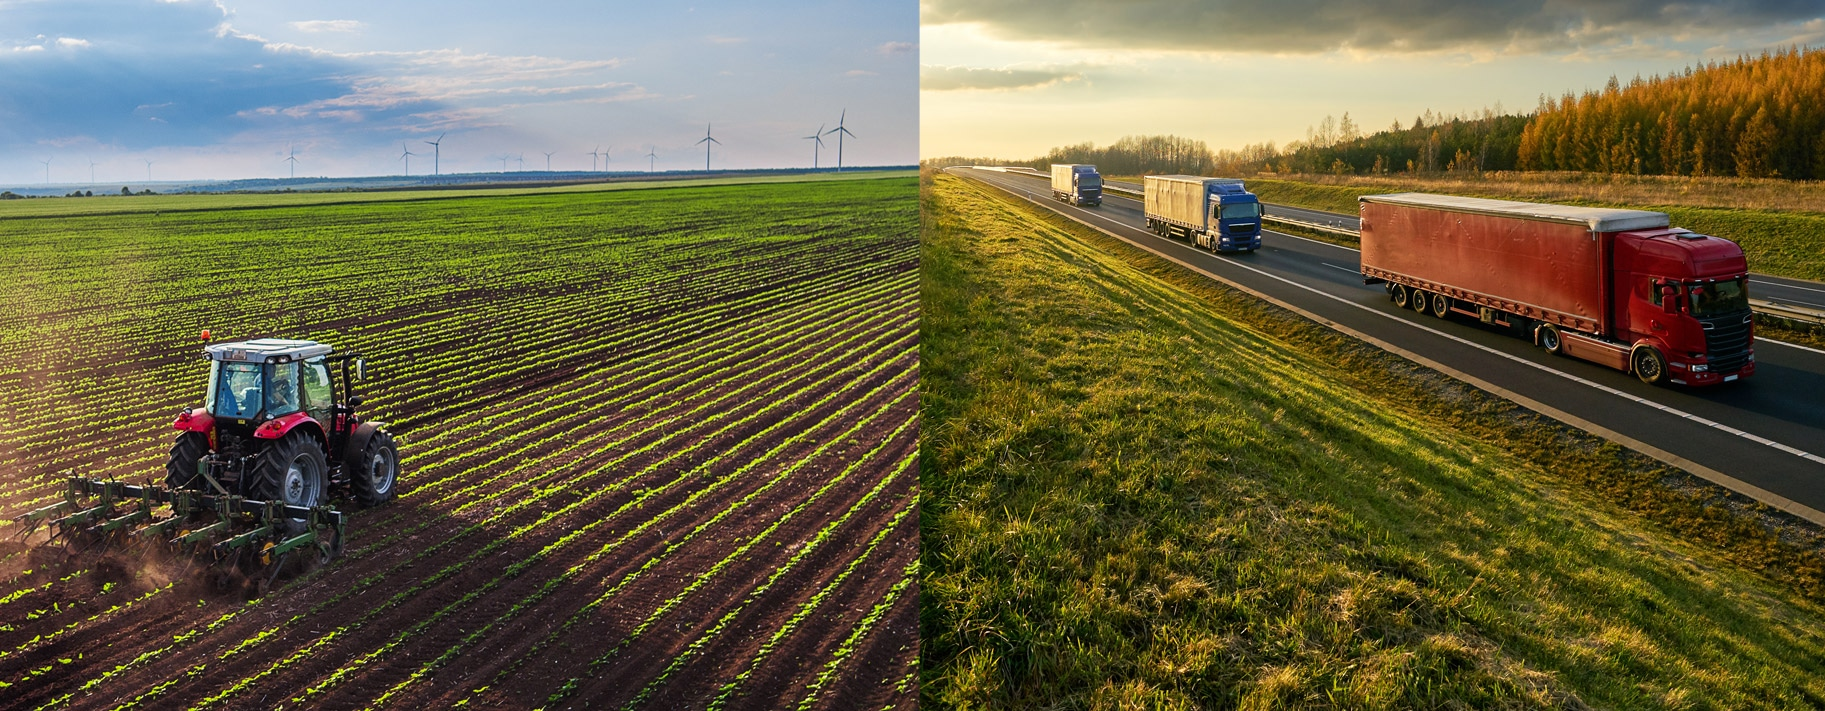 header image Produce Season Transportation Impacts